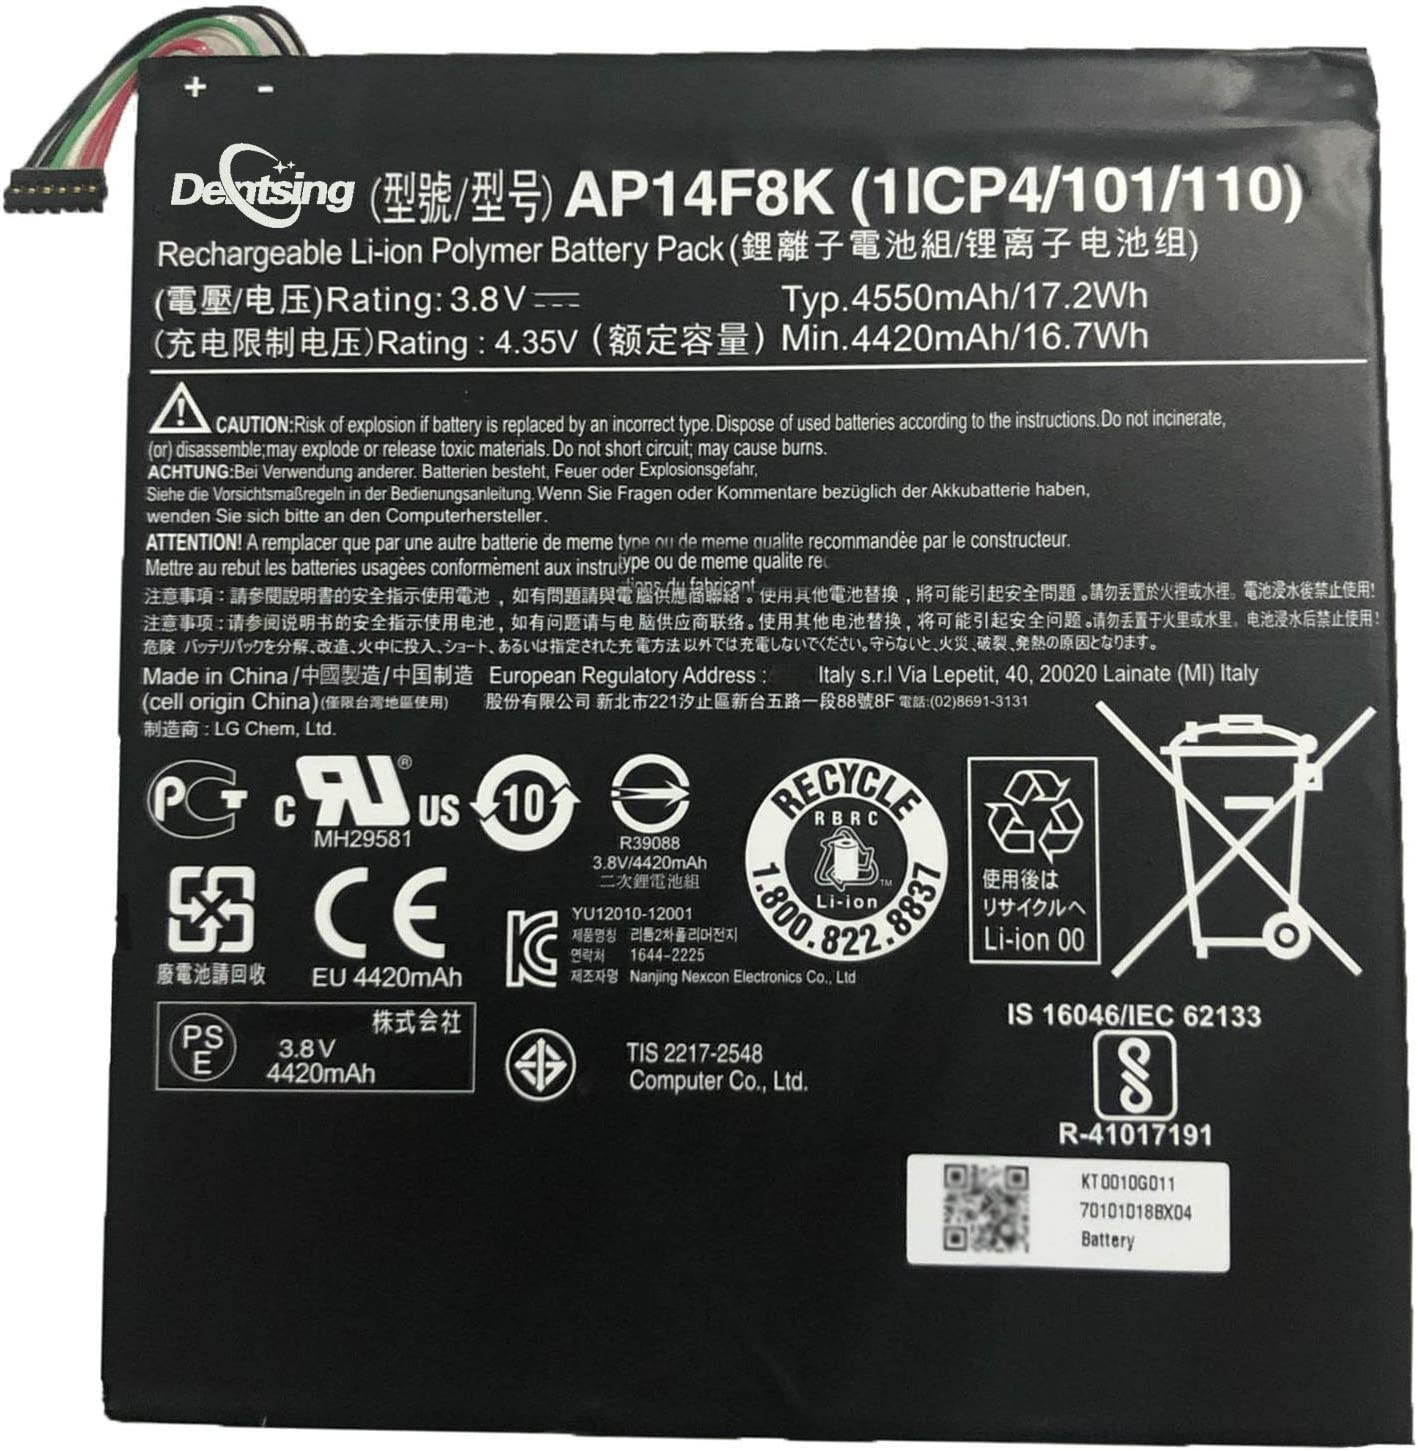 Dentsing AP14F8K 3.8V 17.2Wh/4450mAh Laptop Battery Compatible with Acer Iconia Tab A1-850 B1-810 820 W1-810 811 B1-750 Series Notebook AP14E8K 1ICP4/86/94 1ICP4/101/110 KT.0010G.007 KT0010G011